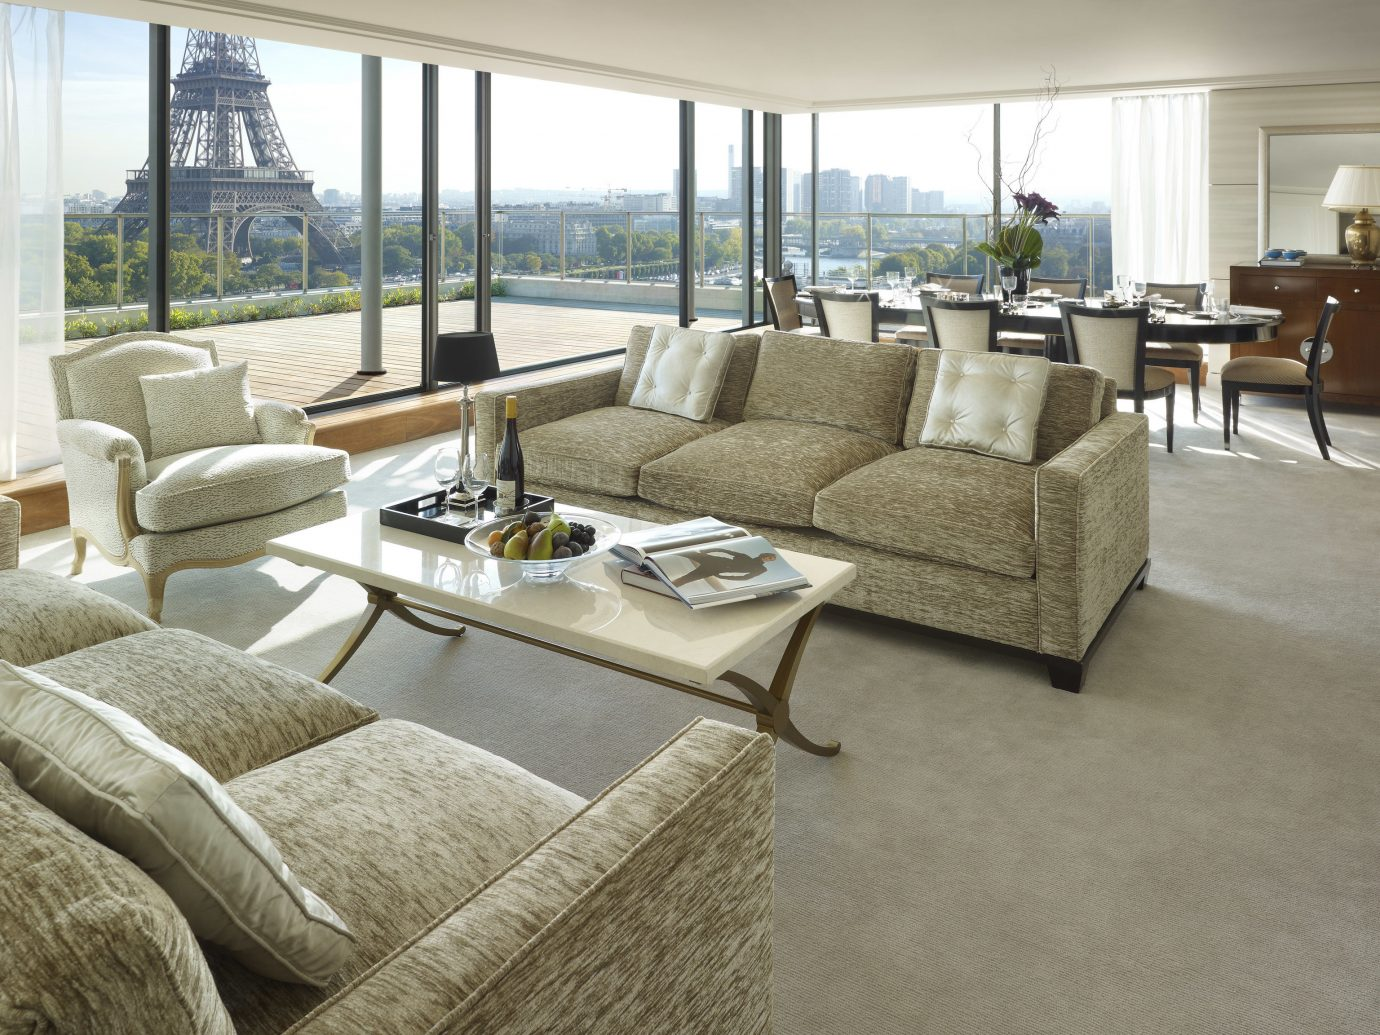 Hotels Luxury Travel indoor floor Living room sofa living room window property furniture interior design flooring ceiling home real estate table wood flooring coffee table hardwood couch loveseat chair estate penthouse apartment area several